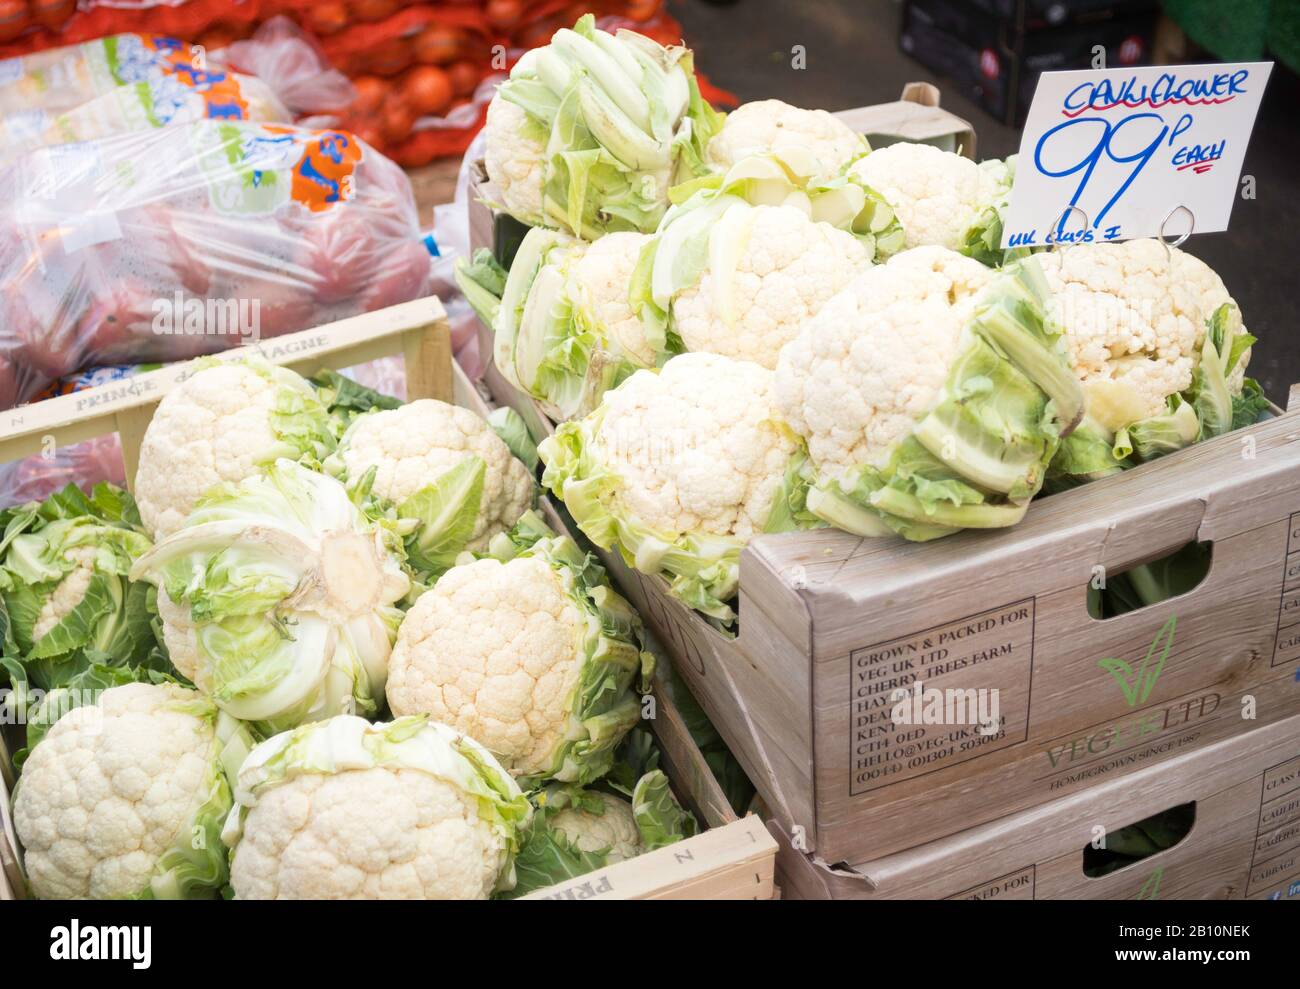 Cauliflowers for sale in a market, England, UK Stock Photo